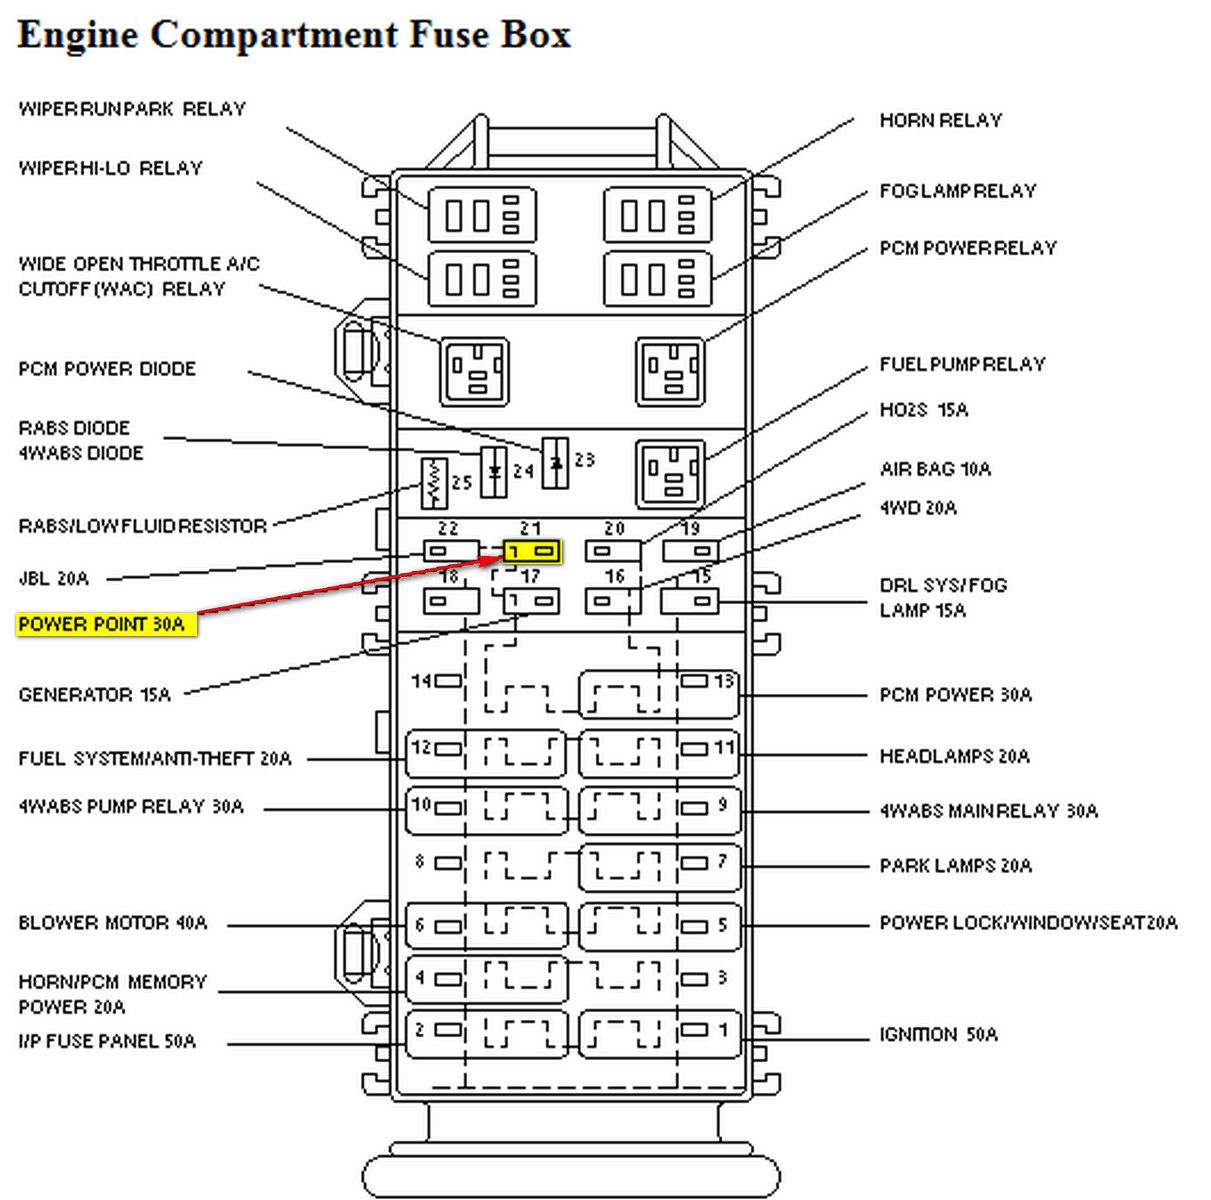 hight resolution of 2002 ford ranger fuse diagram 1997 ford ranger fuse box diagram 1998 ford explorer fuse diagram 9 10 from 48 votes 1998 ford explorer